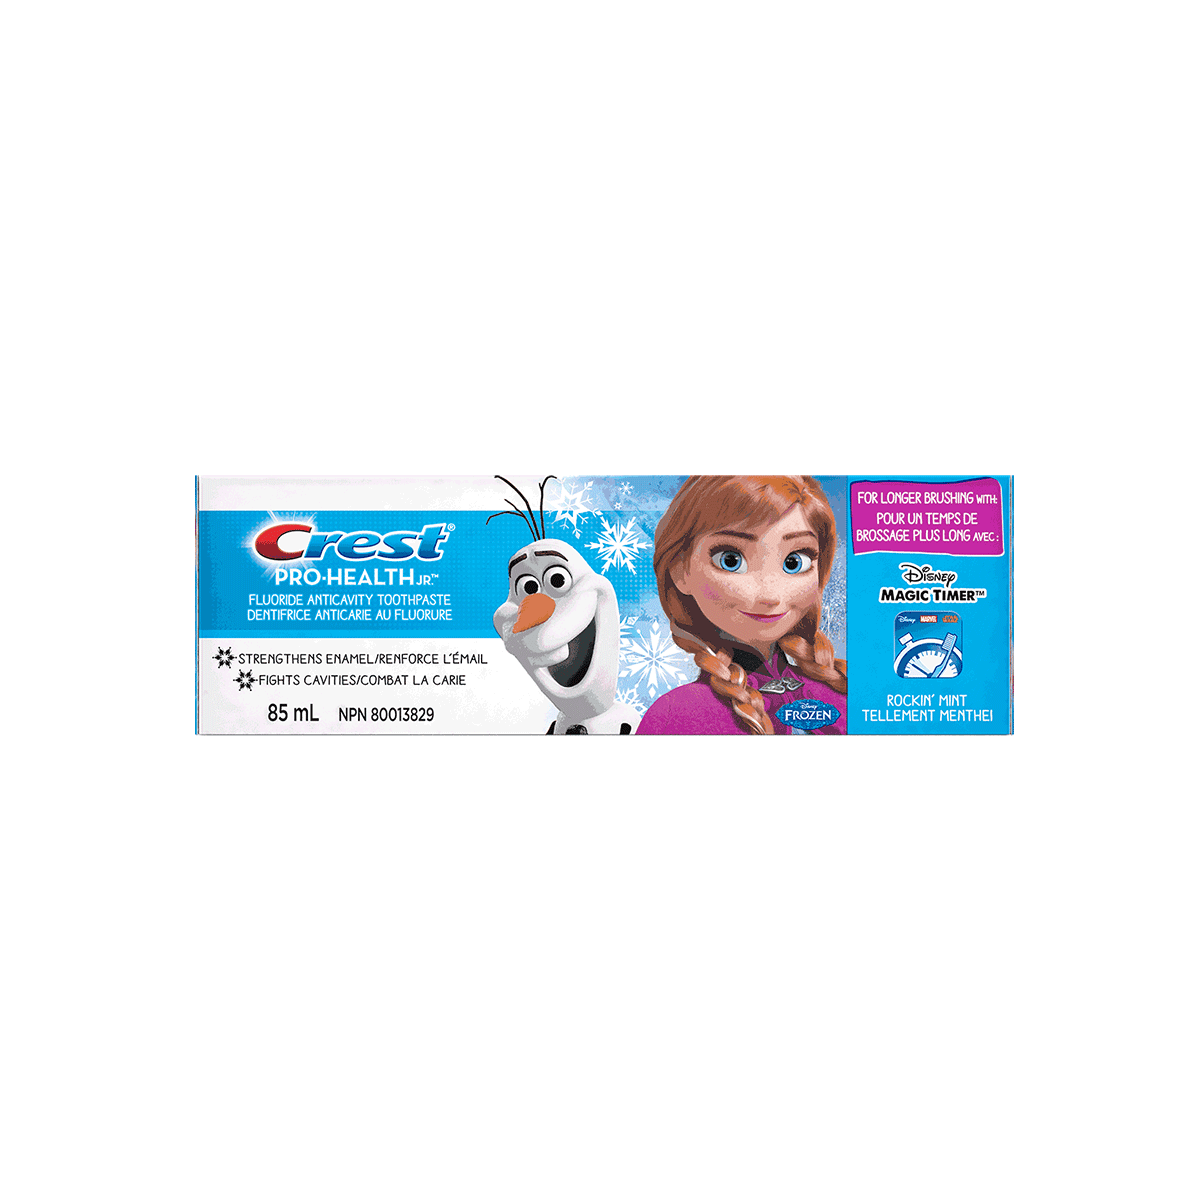 Crest Pro-Health For Me Frozen Toothpaste